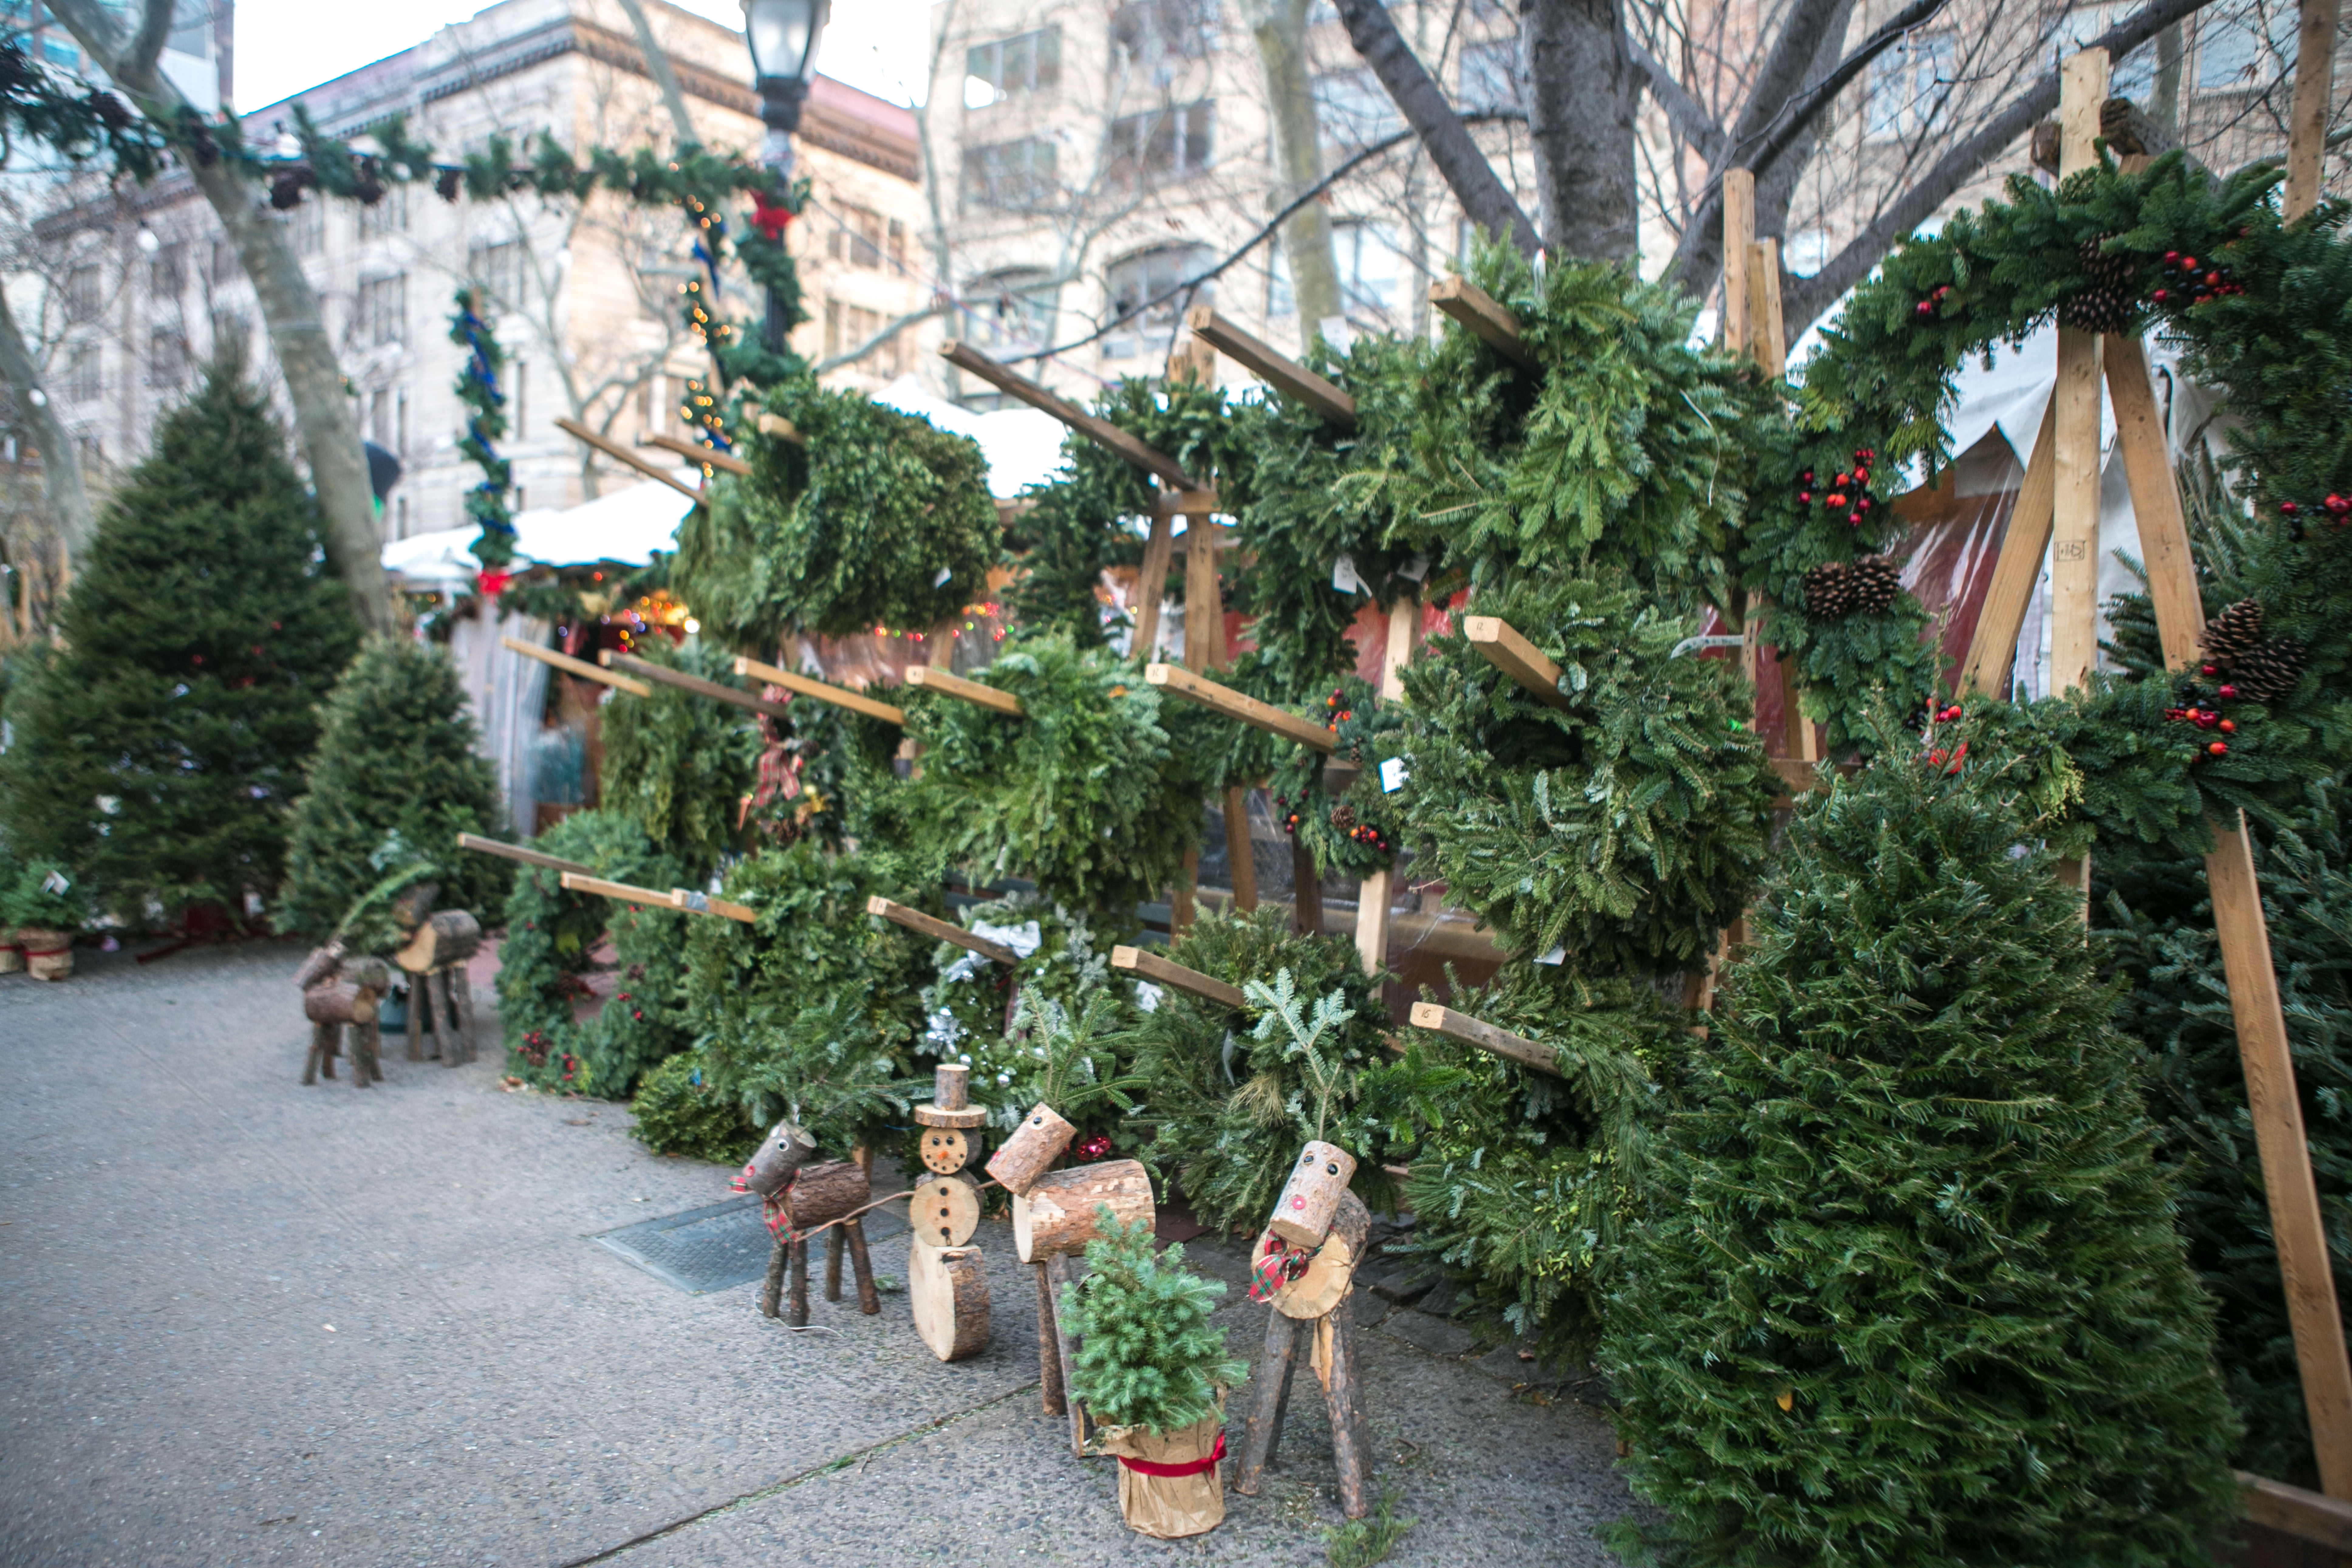 Christmas Trees For Sale.A Peek Behind The Curtain At New York S Christmas Tree Trade